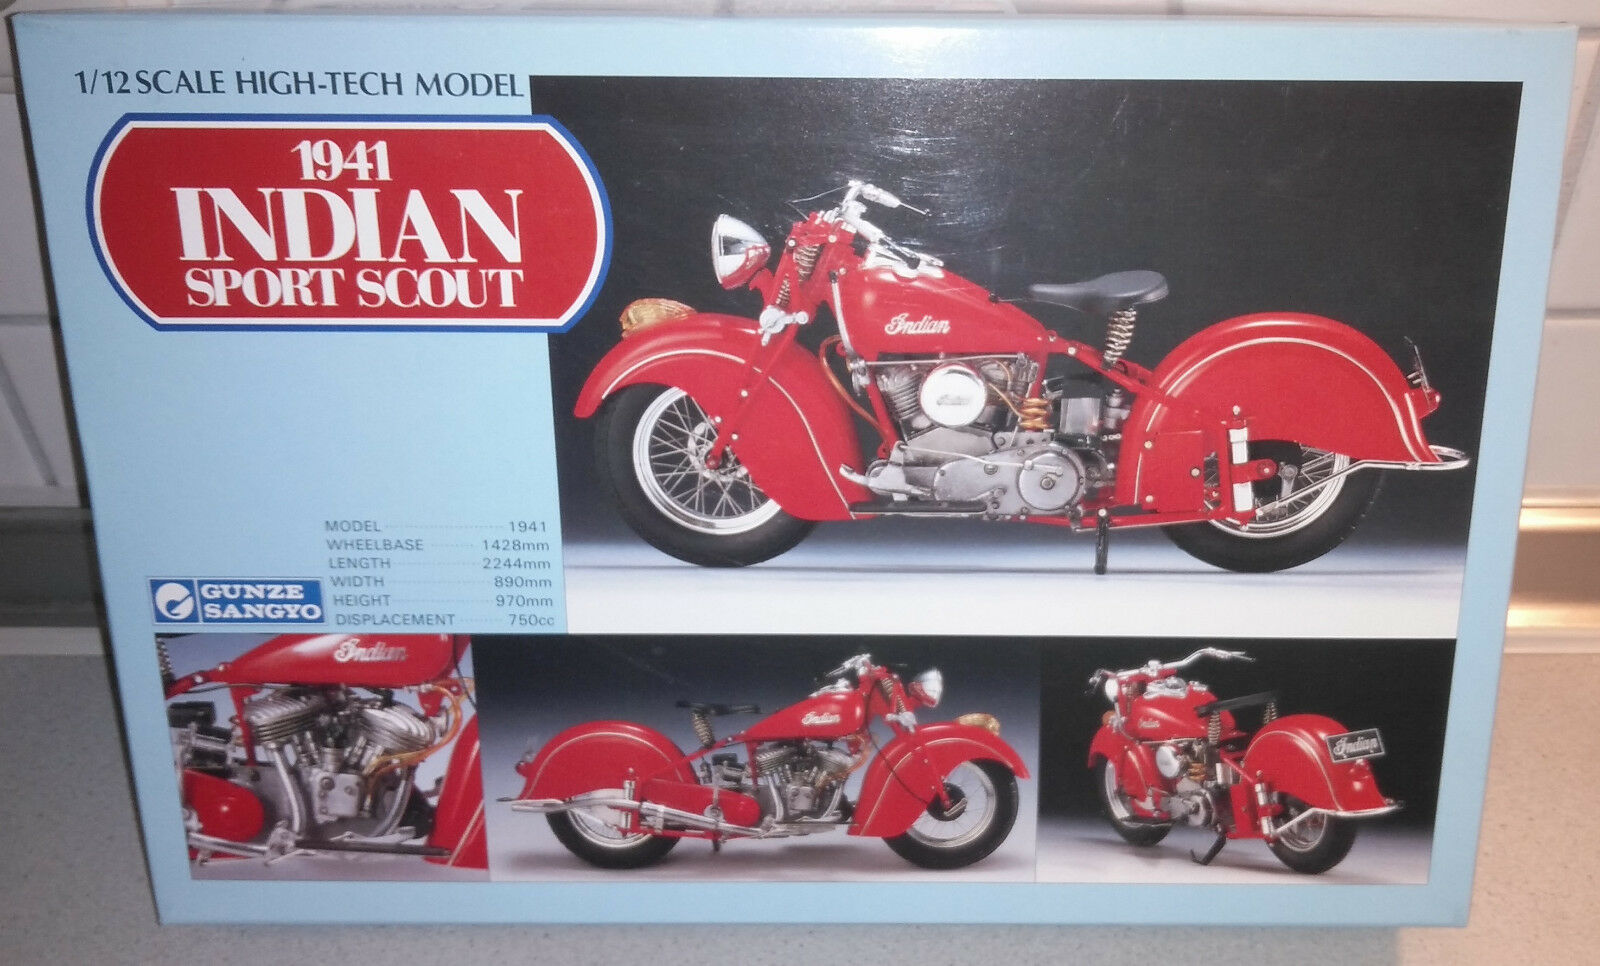 INDIAN SPORT SCOUT 1941 GUNZE SANGYO 1 12 1941 - hoch-Tech Modelllbausatz, RAR